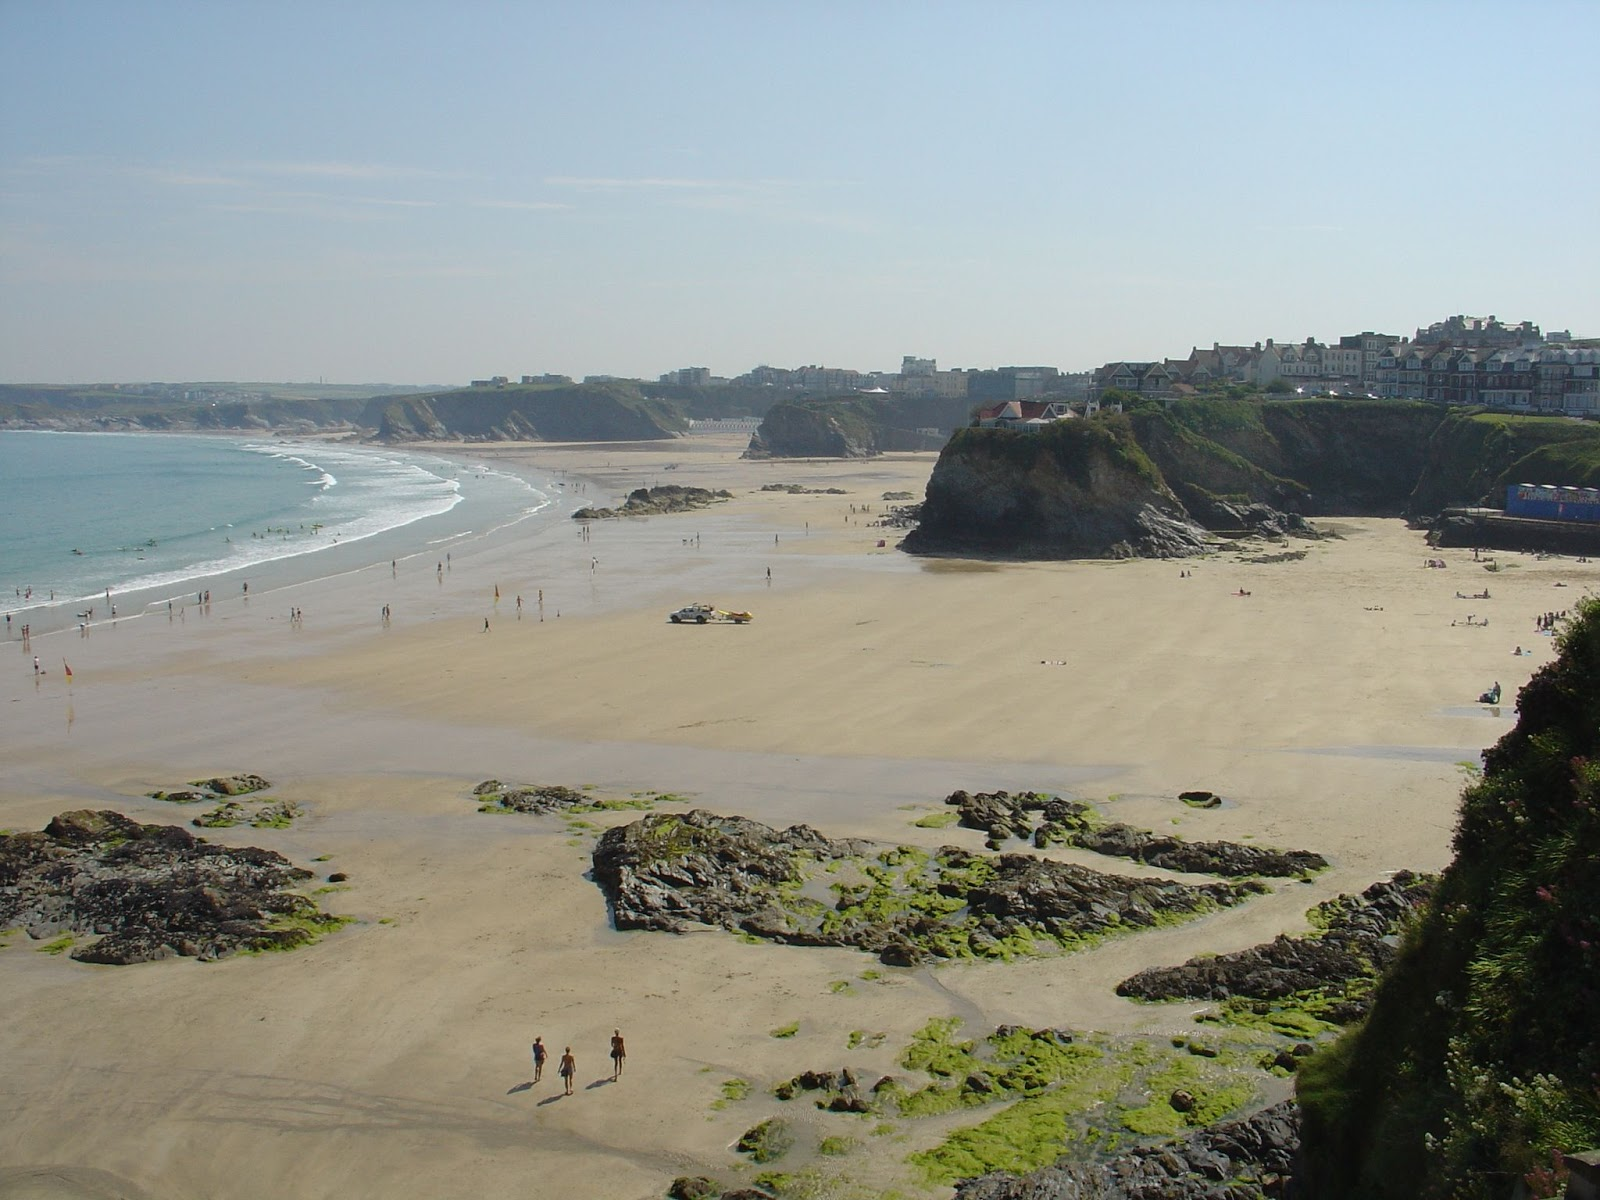 Ellie Bennett39s Blog Newquay To Perranporth Walking The South